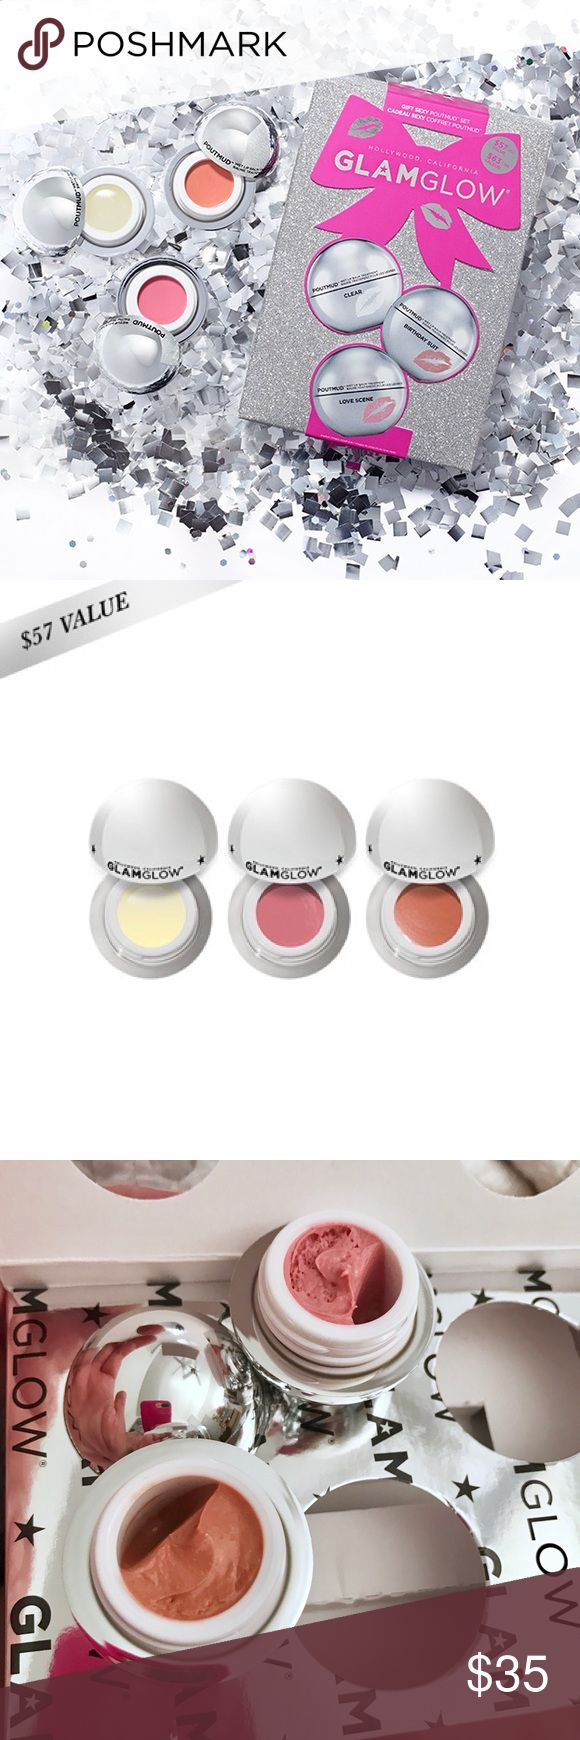 GLAMGLOW PoutMud Wet Lip Balm Treatment Nordstrom GIFT SEXY POUTMUD™ WET LIP BALM TREATMENT is a moisture-rich lip balm treatment designed to create Instantly Softer, Hydrated, & Restored Lips.  ★ POUTMUD™ WET LIP BALM TREATMENT in CLEAR 7g ★ POUTMUD™ WET LIP BALM TREATMENT in BIRTHDAY SUIT 7g ★ POUTMUD™ WET LIP BALM TREATMENT in LOVE SCENE 7g  Never used!! Clear balm has a protective cover, tinted balms are of whipped consistency and have settled as they were stored on their side. Purchased…